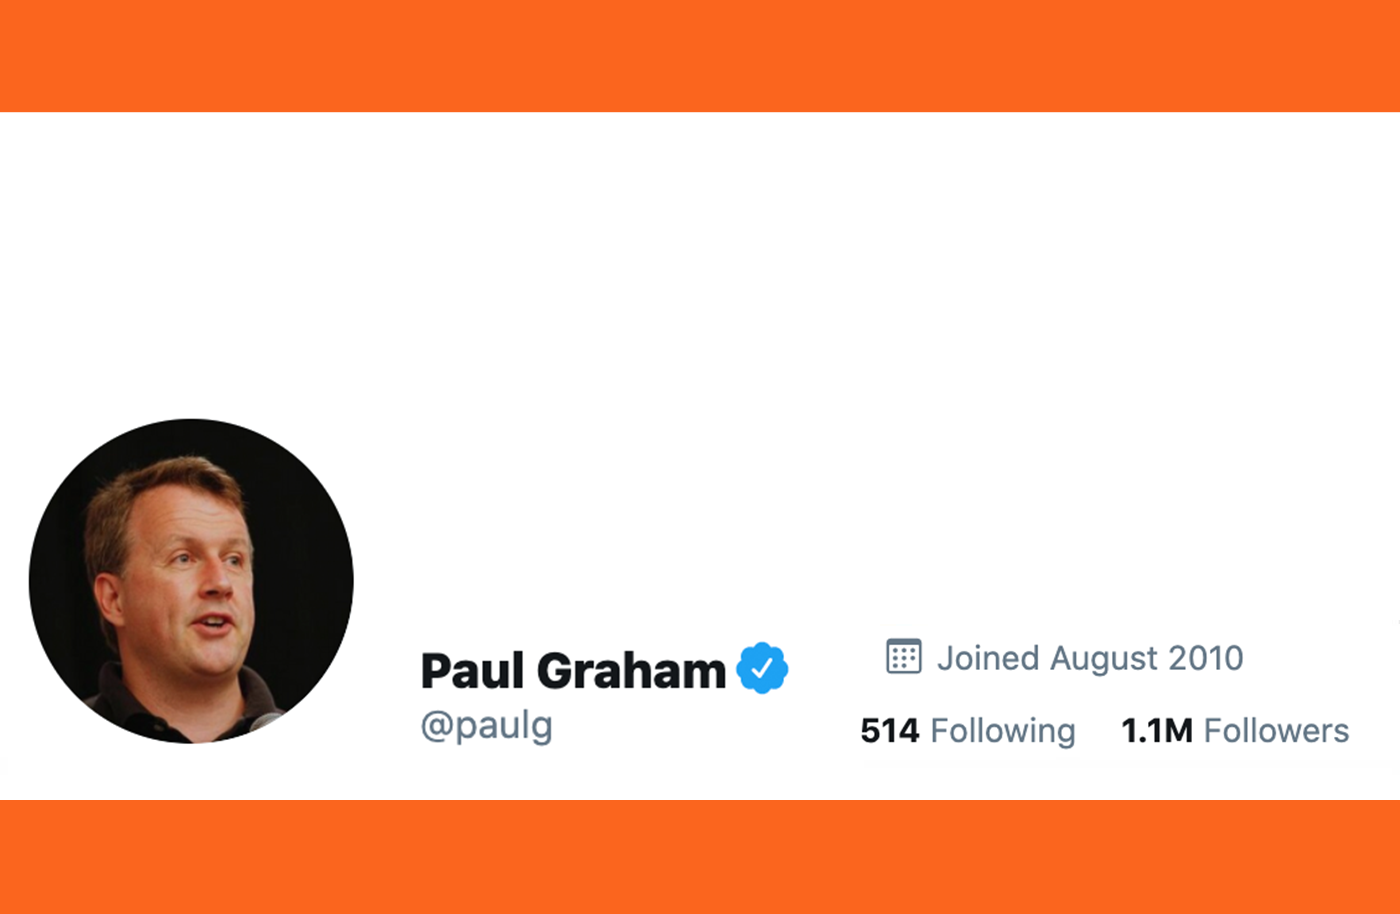 Every Book Paul Graham Mentioned on Twitter (with Tweets!)